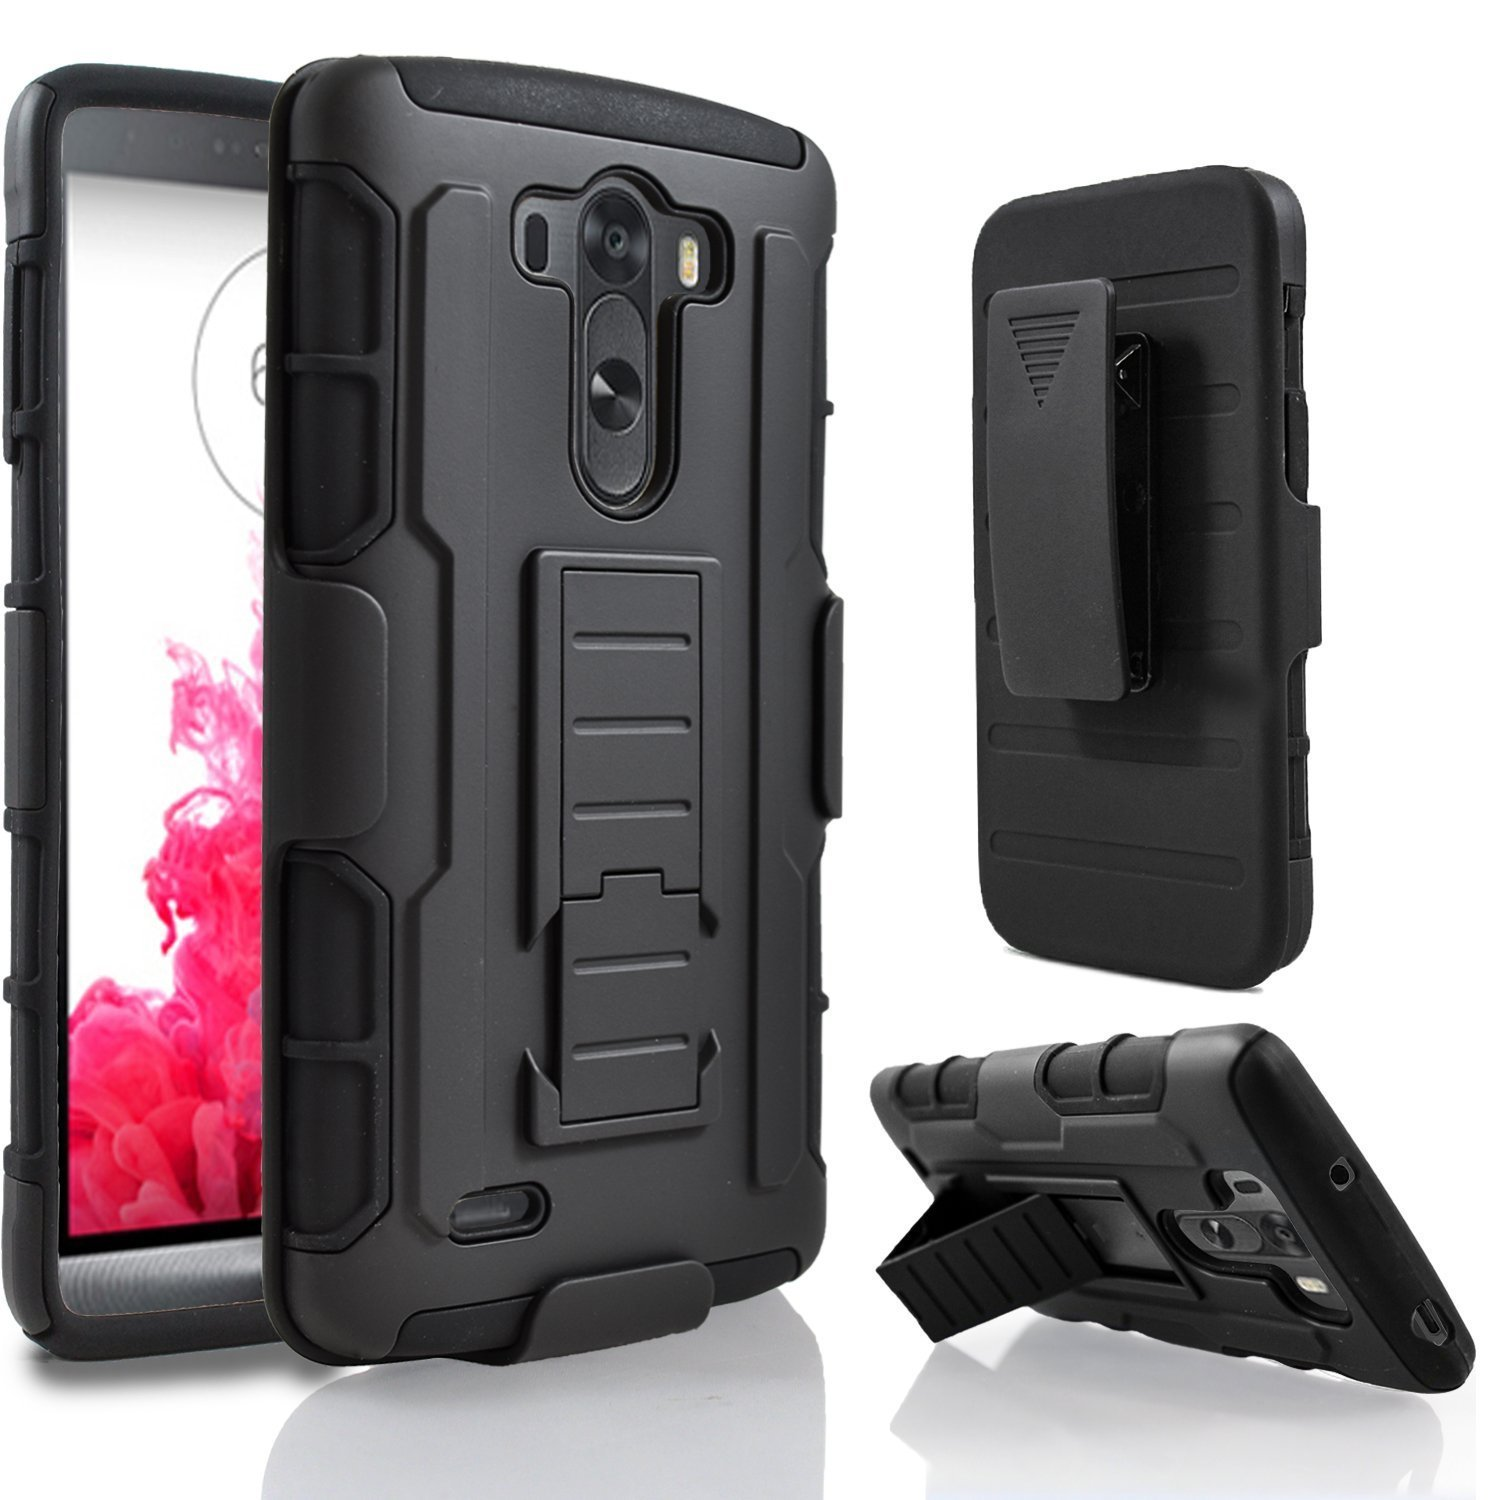 Black Protective Holster Armor Impact Hybrid Shockproof Stand Hard Case For LG G3/G3 Mini S Beat/G3 Stylus Cover With Belt Clip(China (Mainland))